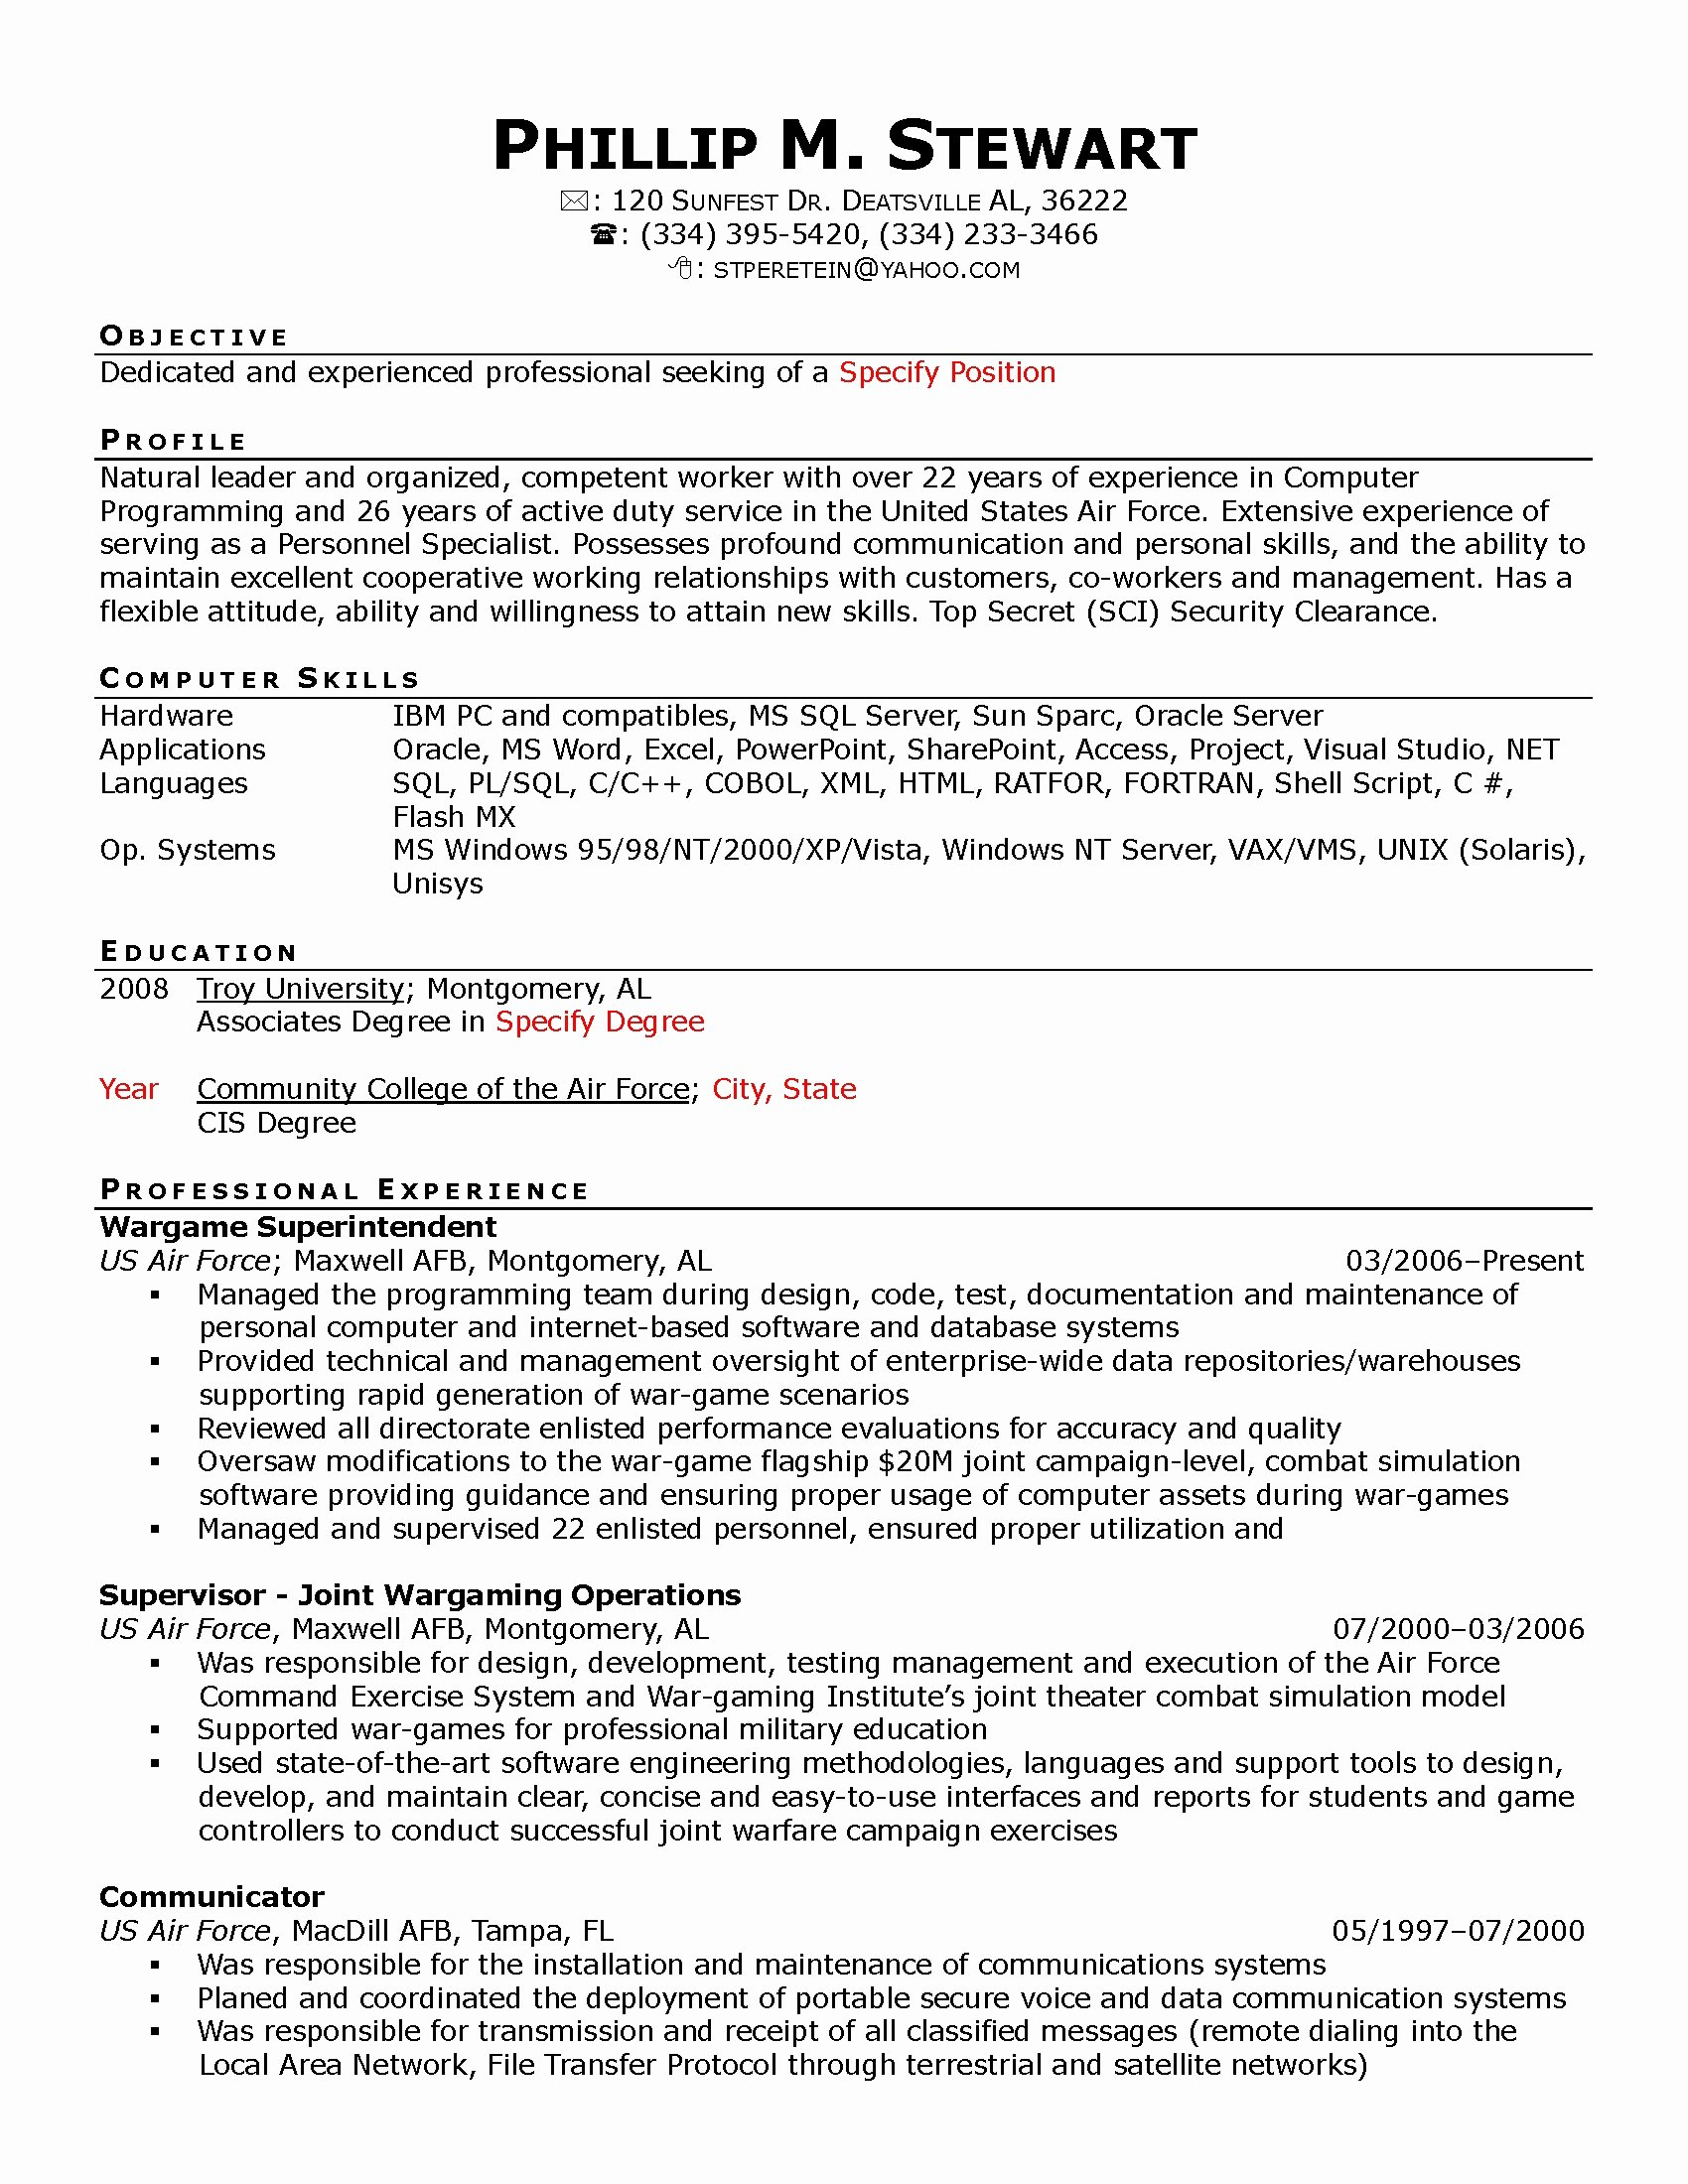 Air force Position Paper Template Fresh Personnel Security Specialist Resume Sample Resume Ideas